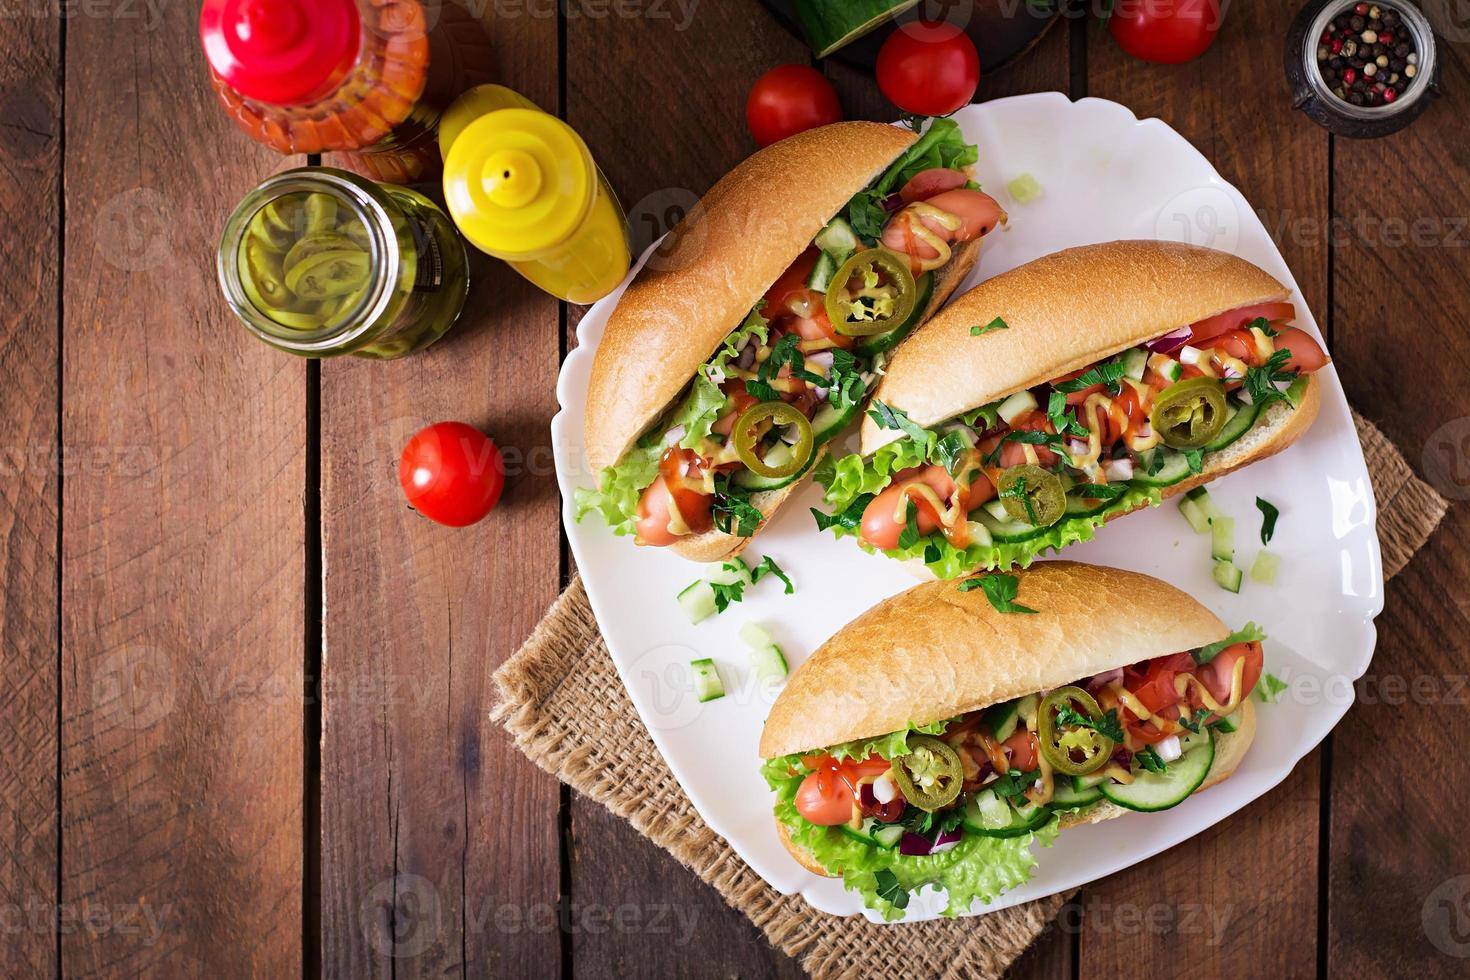 Hot dog with jalapeno peppers, tomato, cucumber and lettuce photo